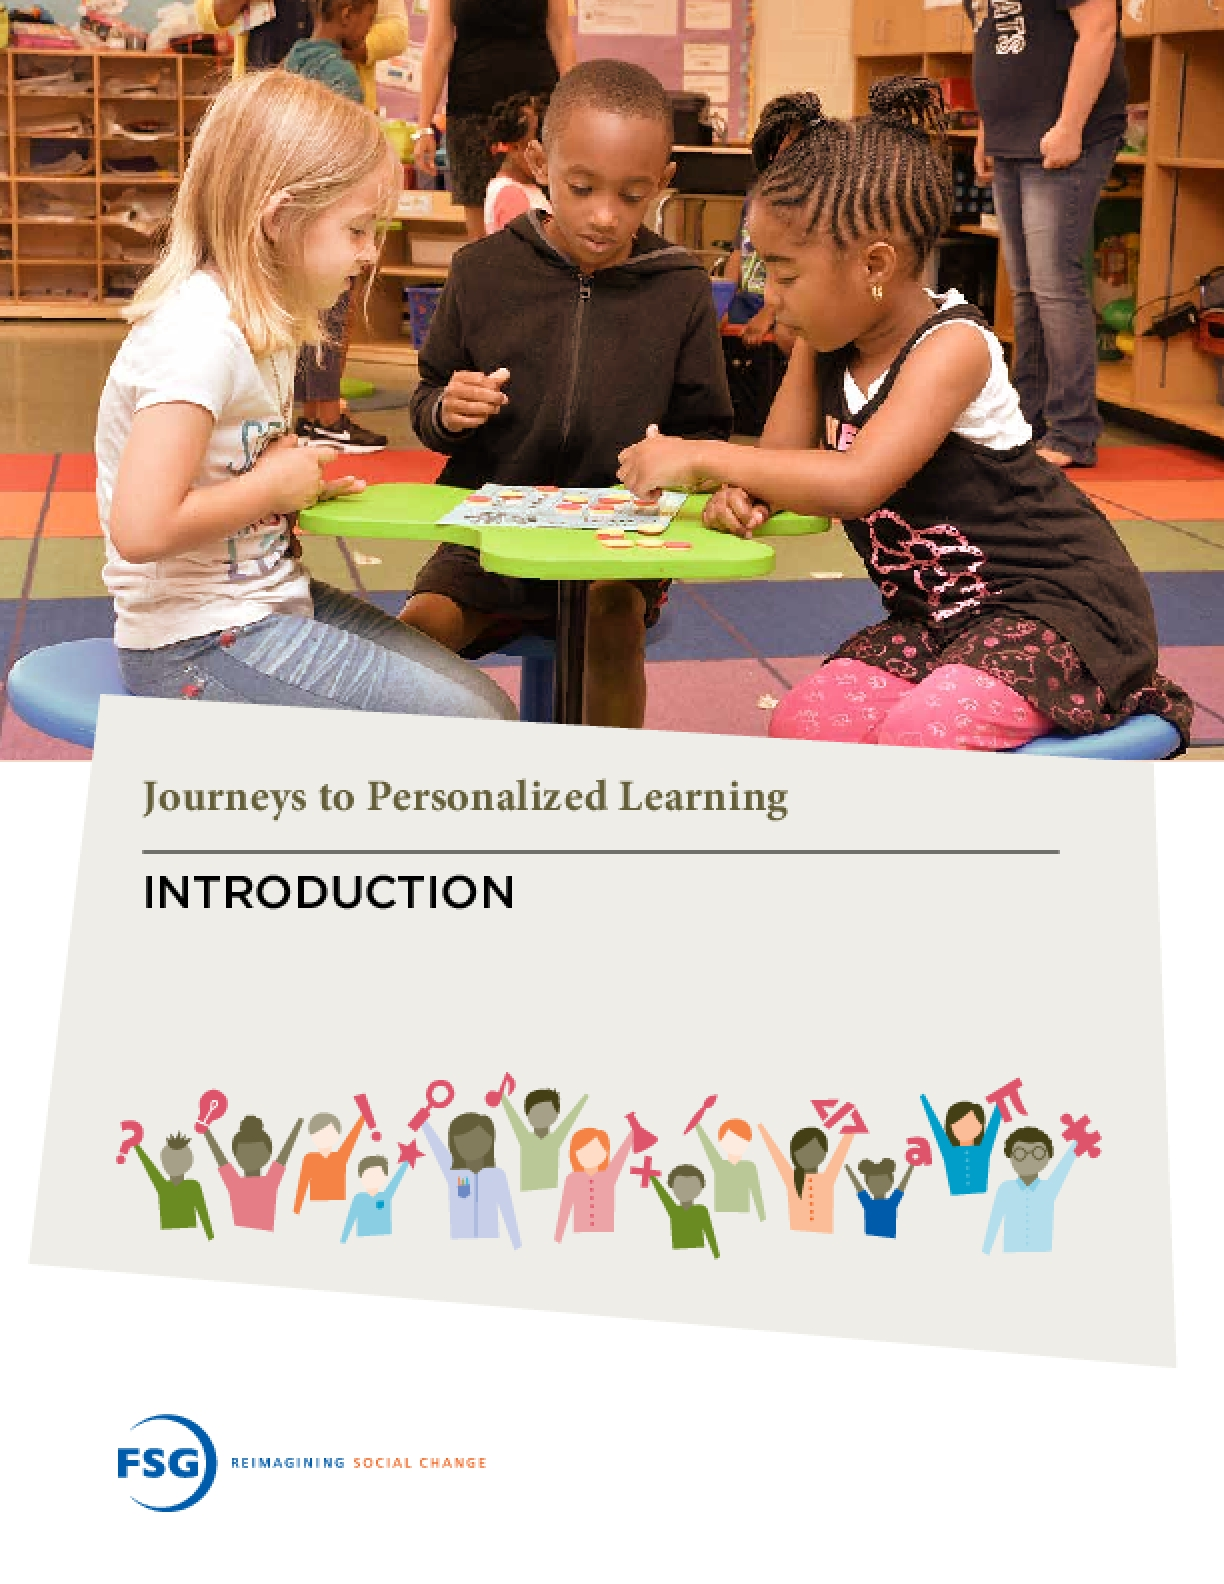 Journeys to Personalized Learning